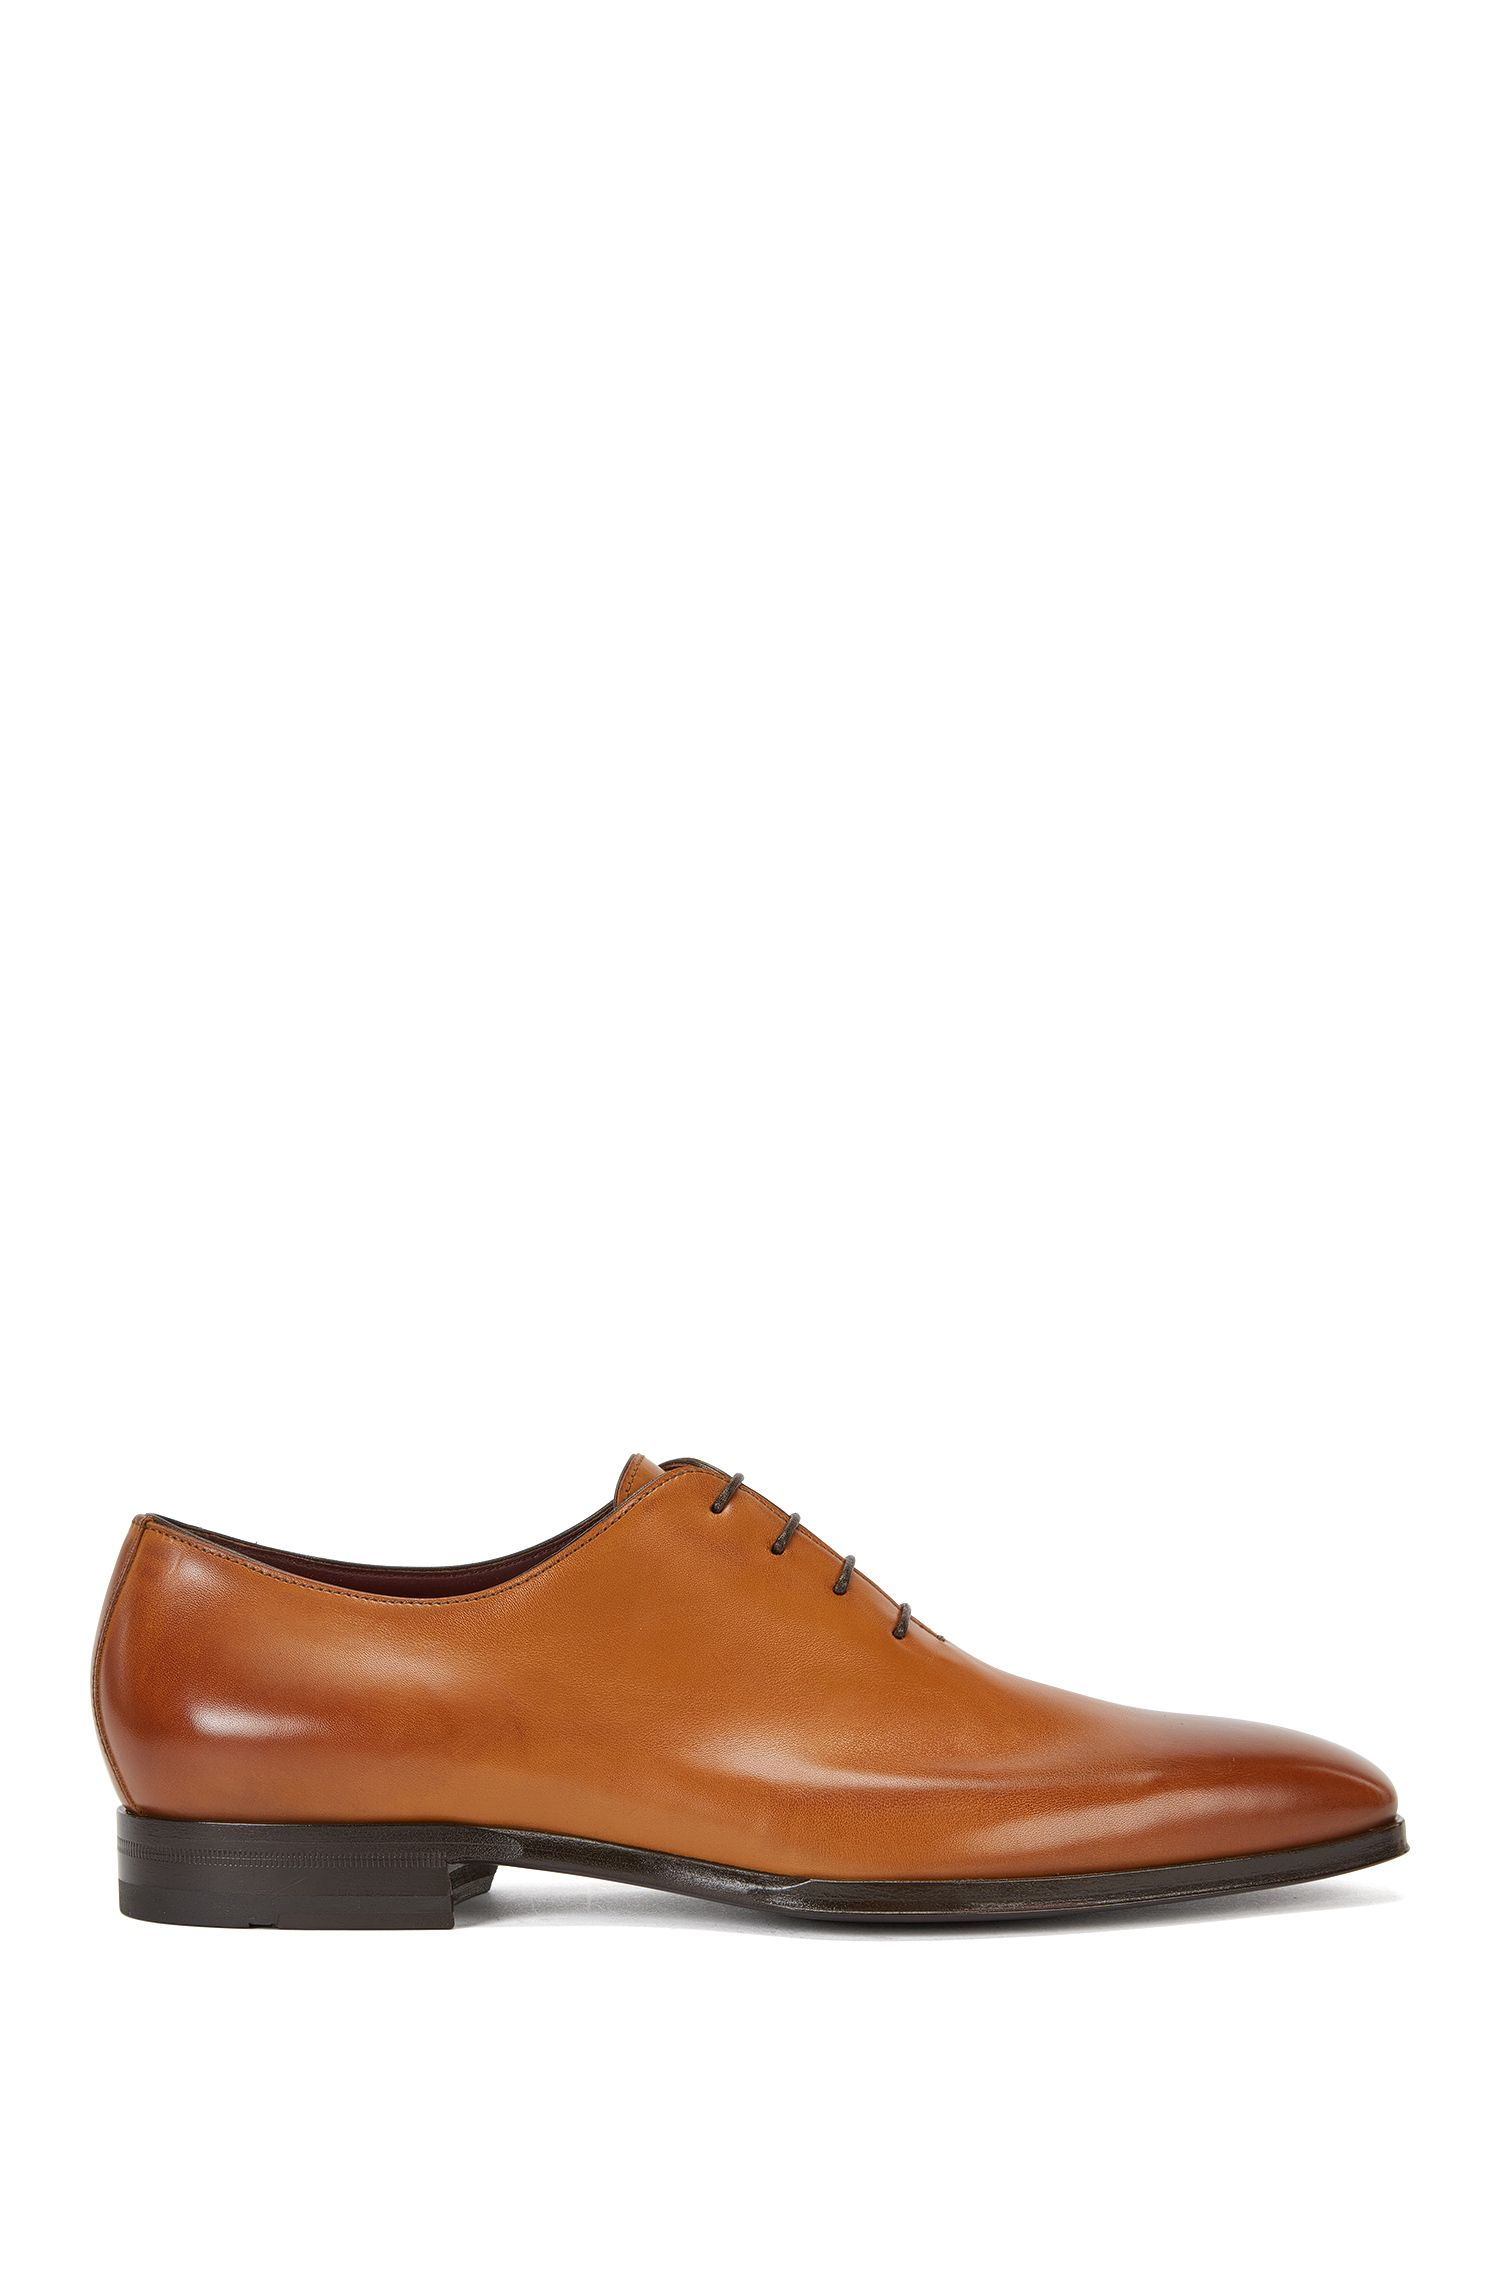 Zapatos Oxford de BOSS Tailored en piel pulida